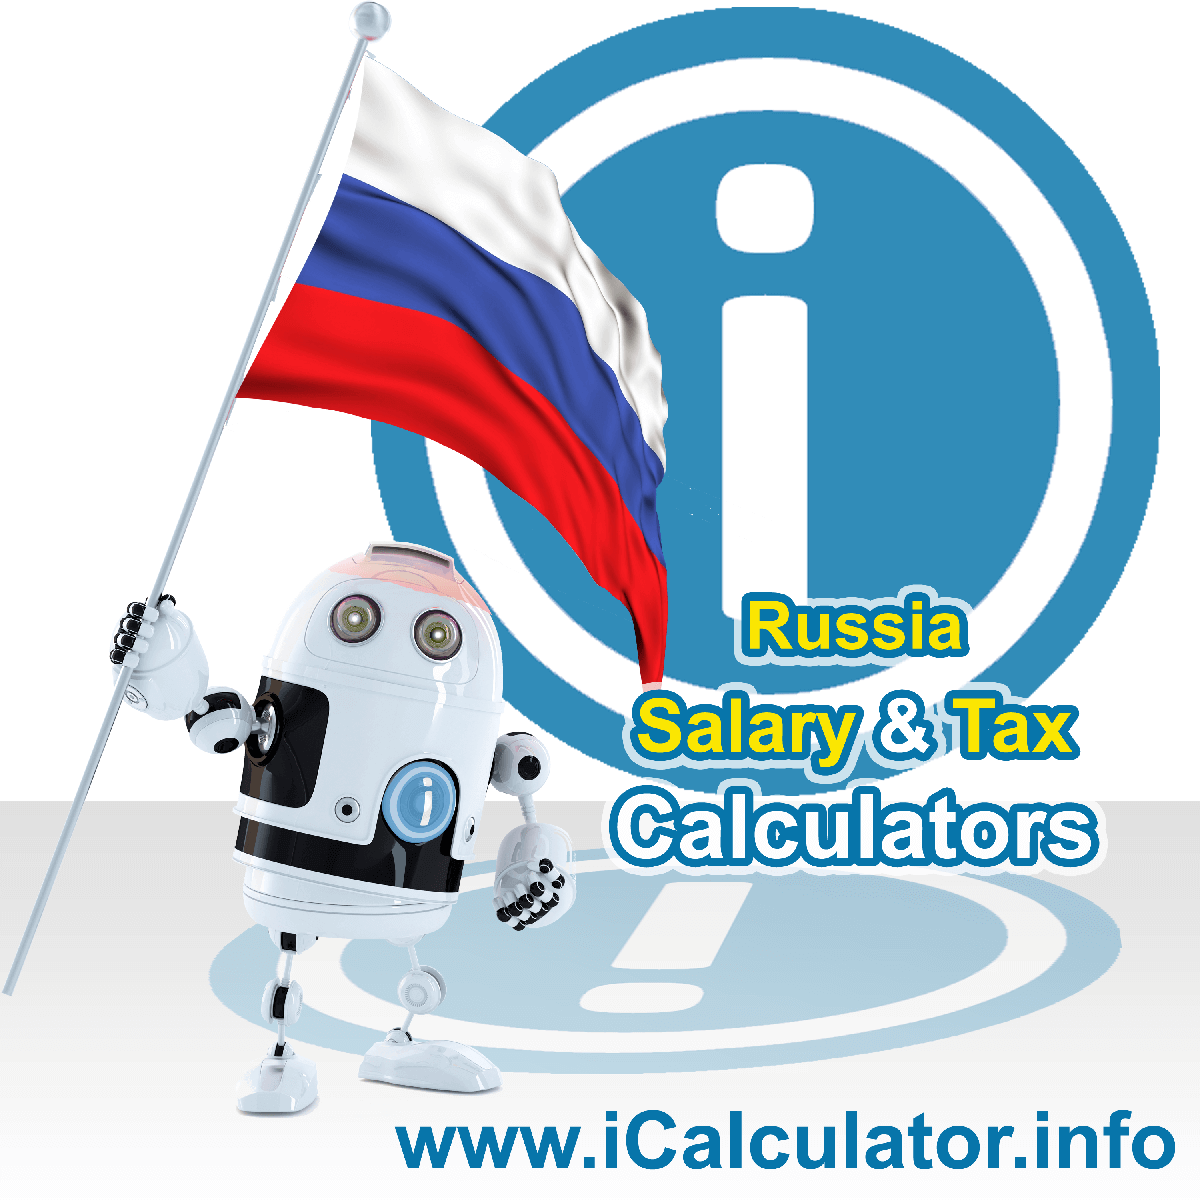 Russia Tax Calculator. This image shows the Russia flag and information relating to the tax formula for the Russia Salary Calculator